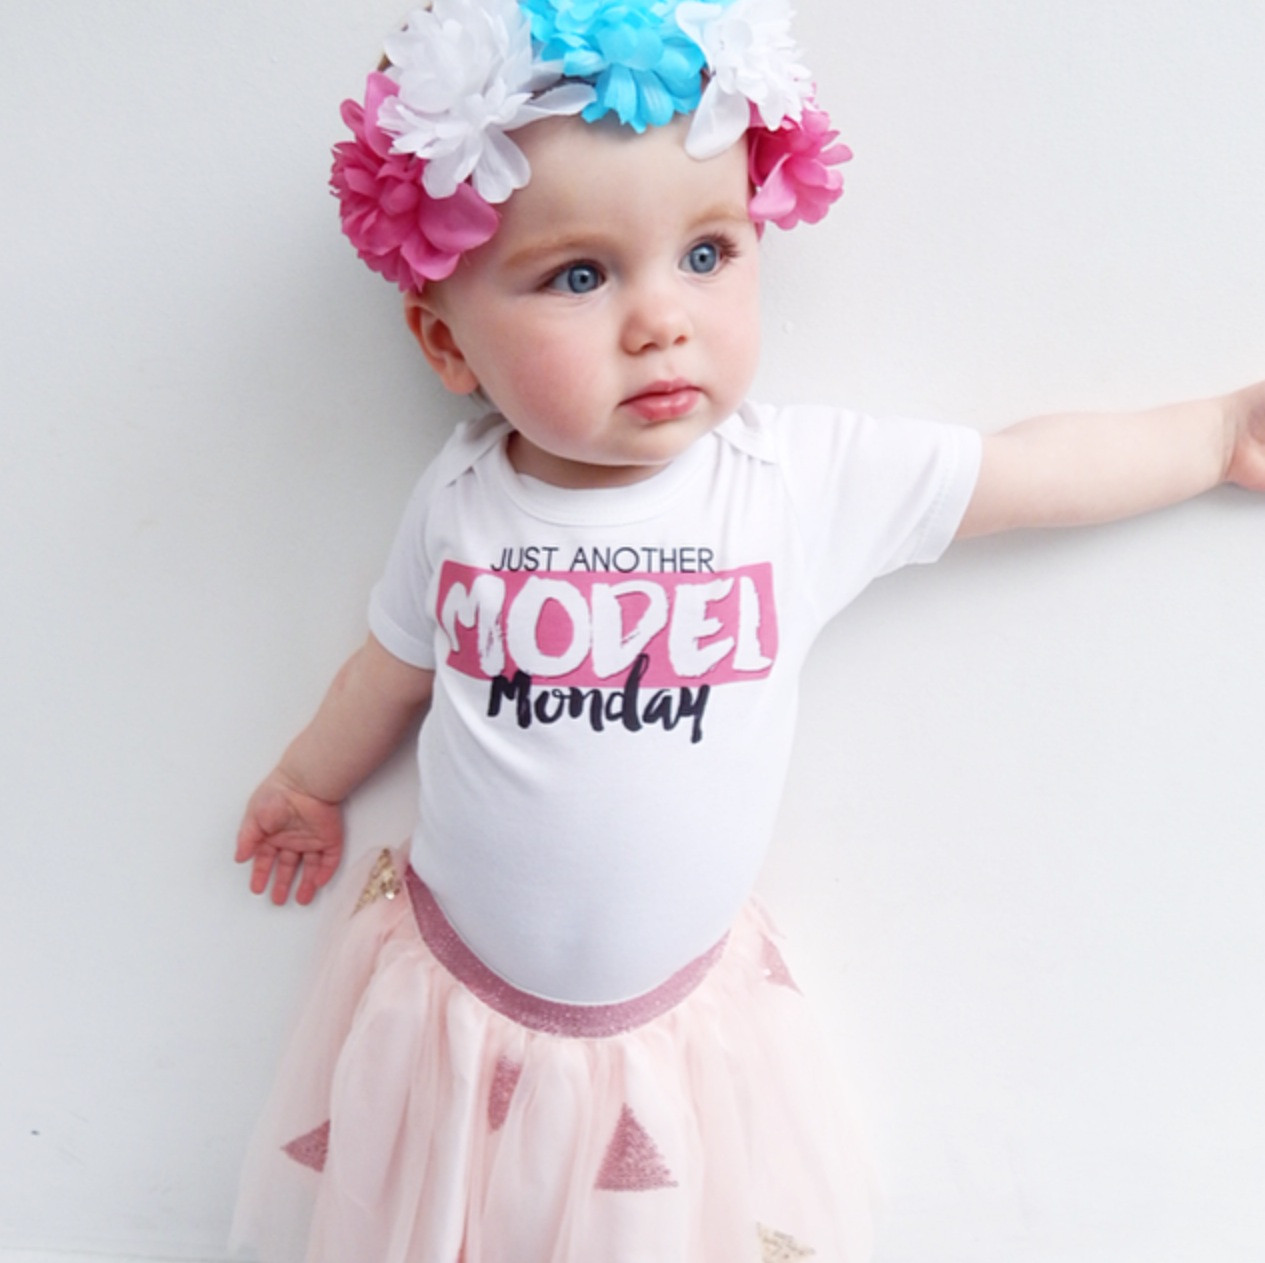 Just Another Model Monday Baby Tee Custom Baby Clothing